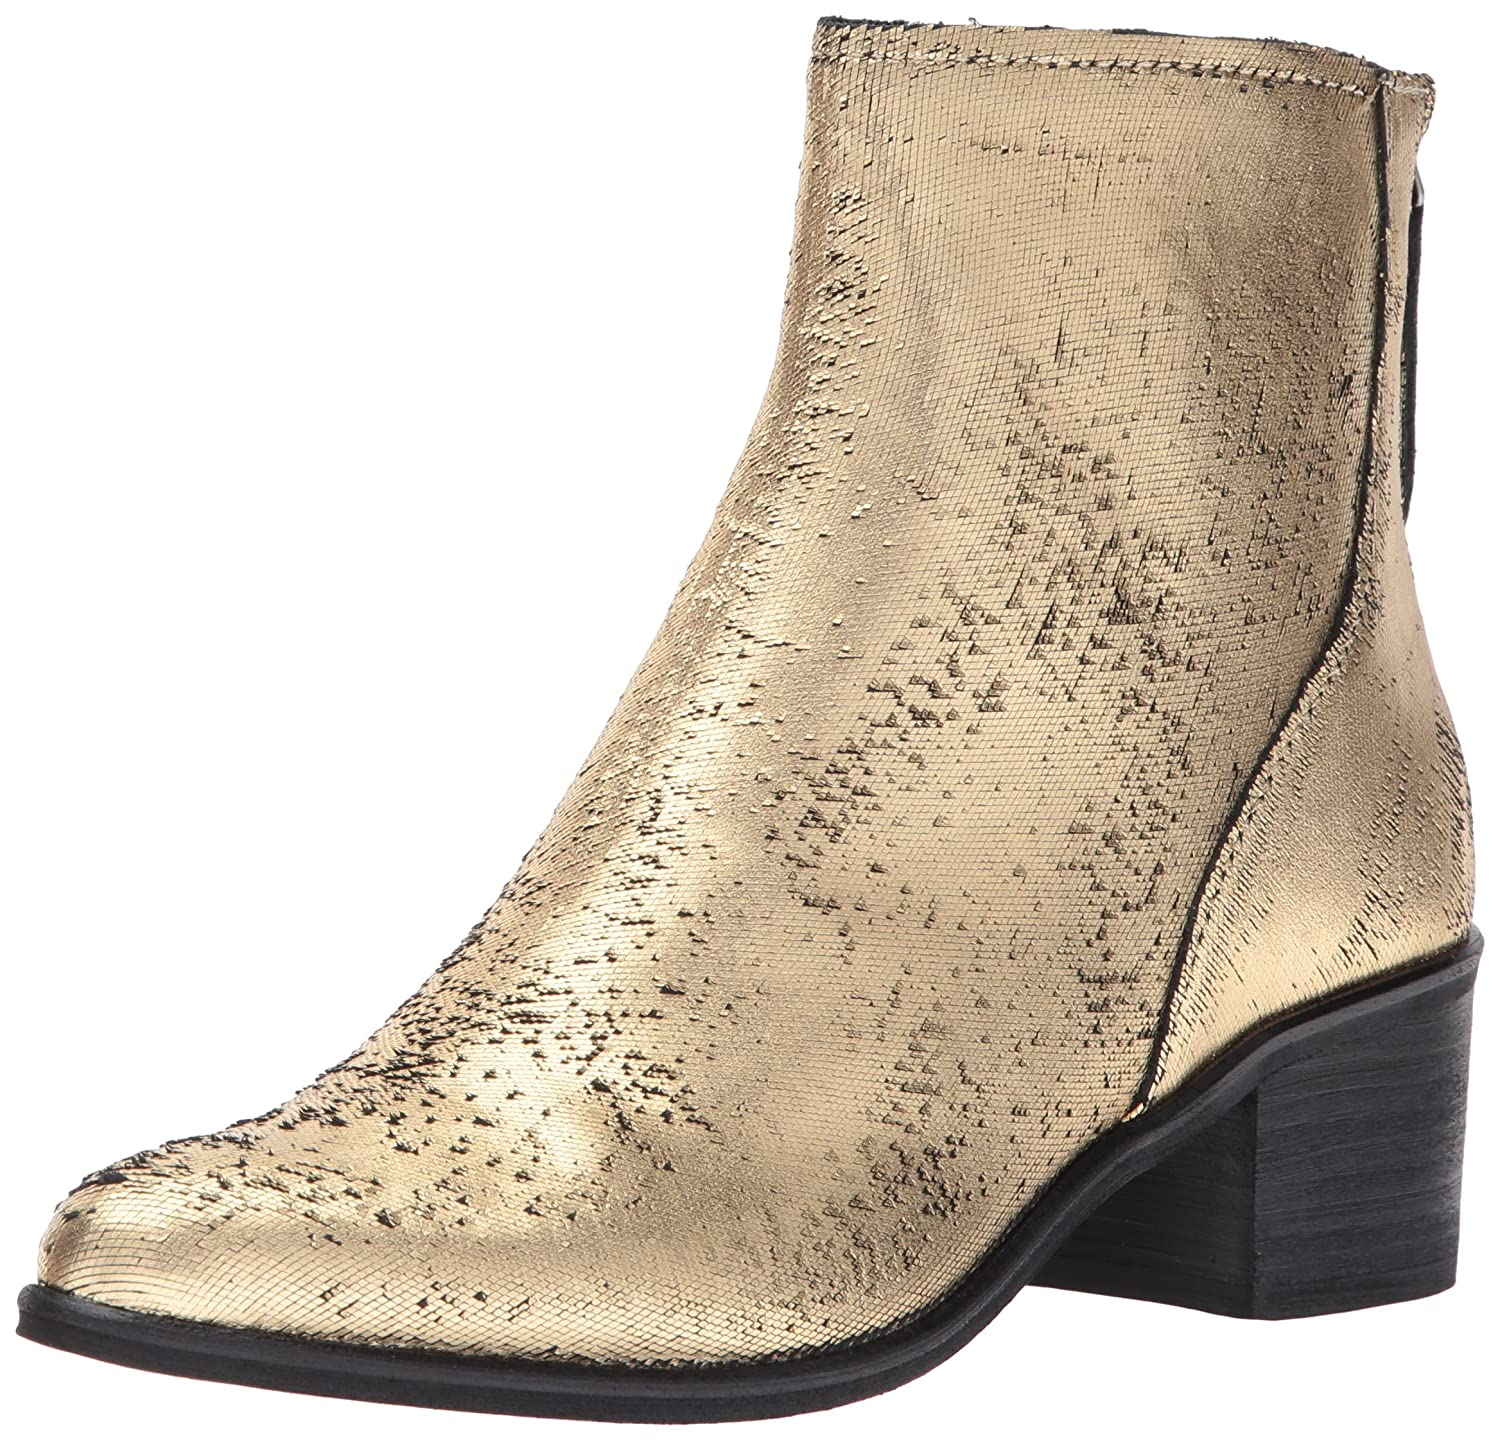 Dolce Vita Women's Cassius Ankle Boot B071G29HD2 9.5 B(M) US|Gold Leather